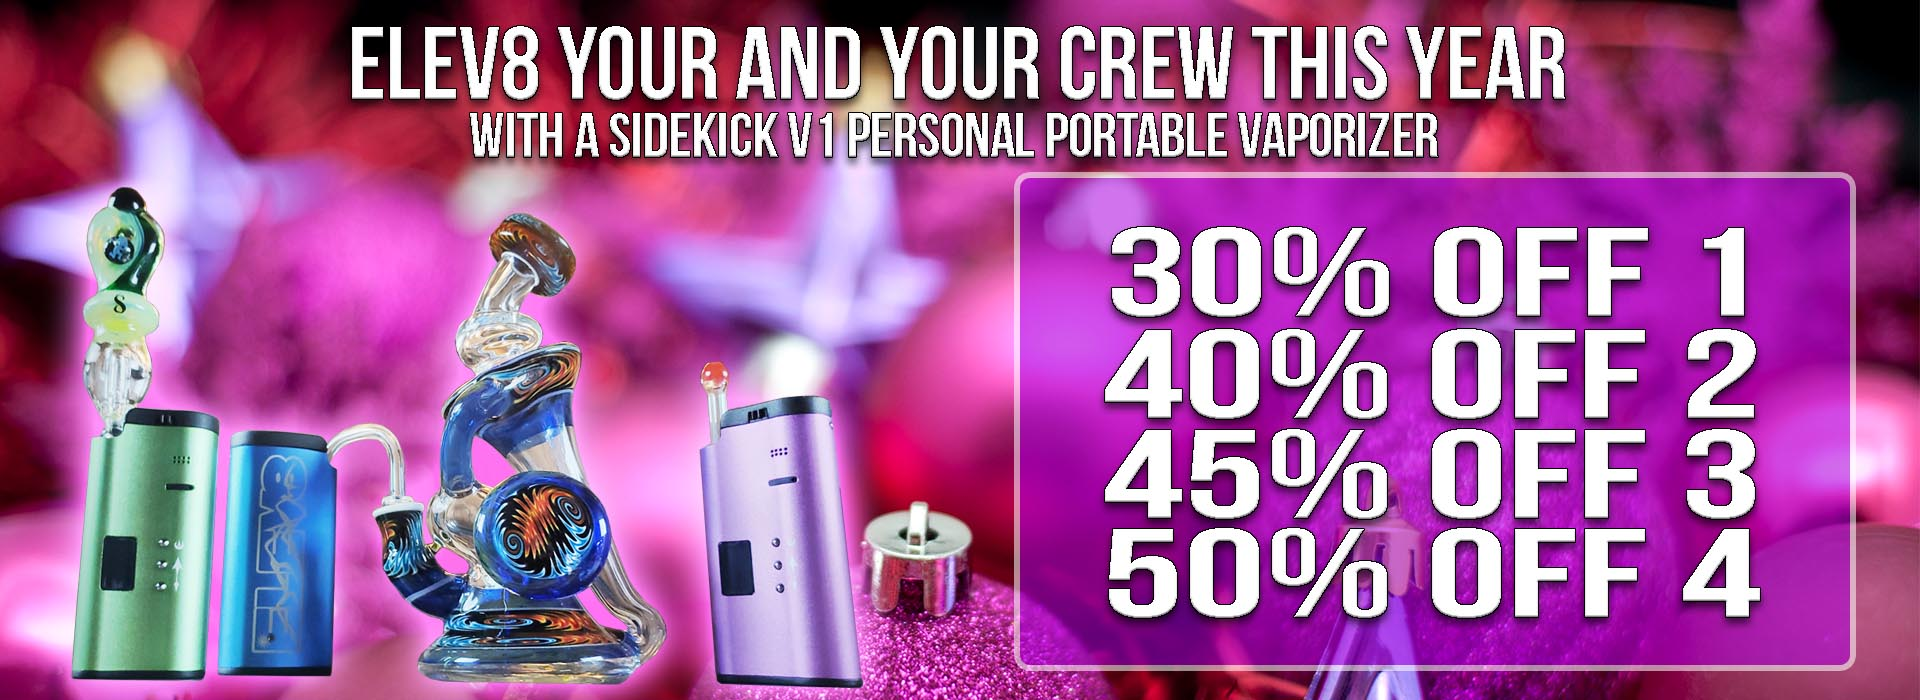 sidekick-christmas-sale-hot-deasl.jpg